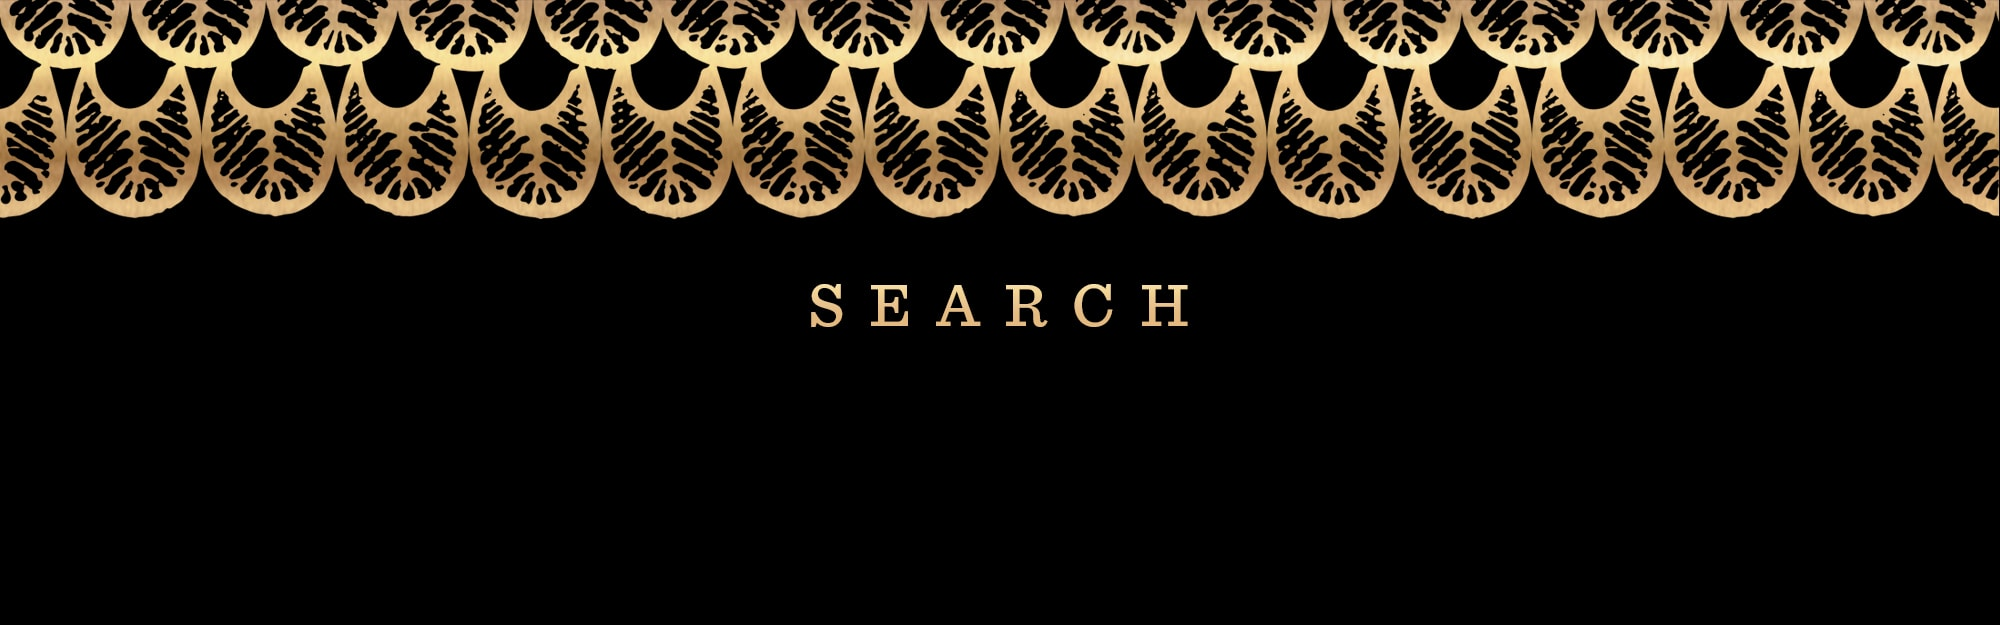 Search Banner